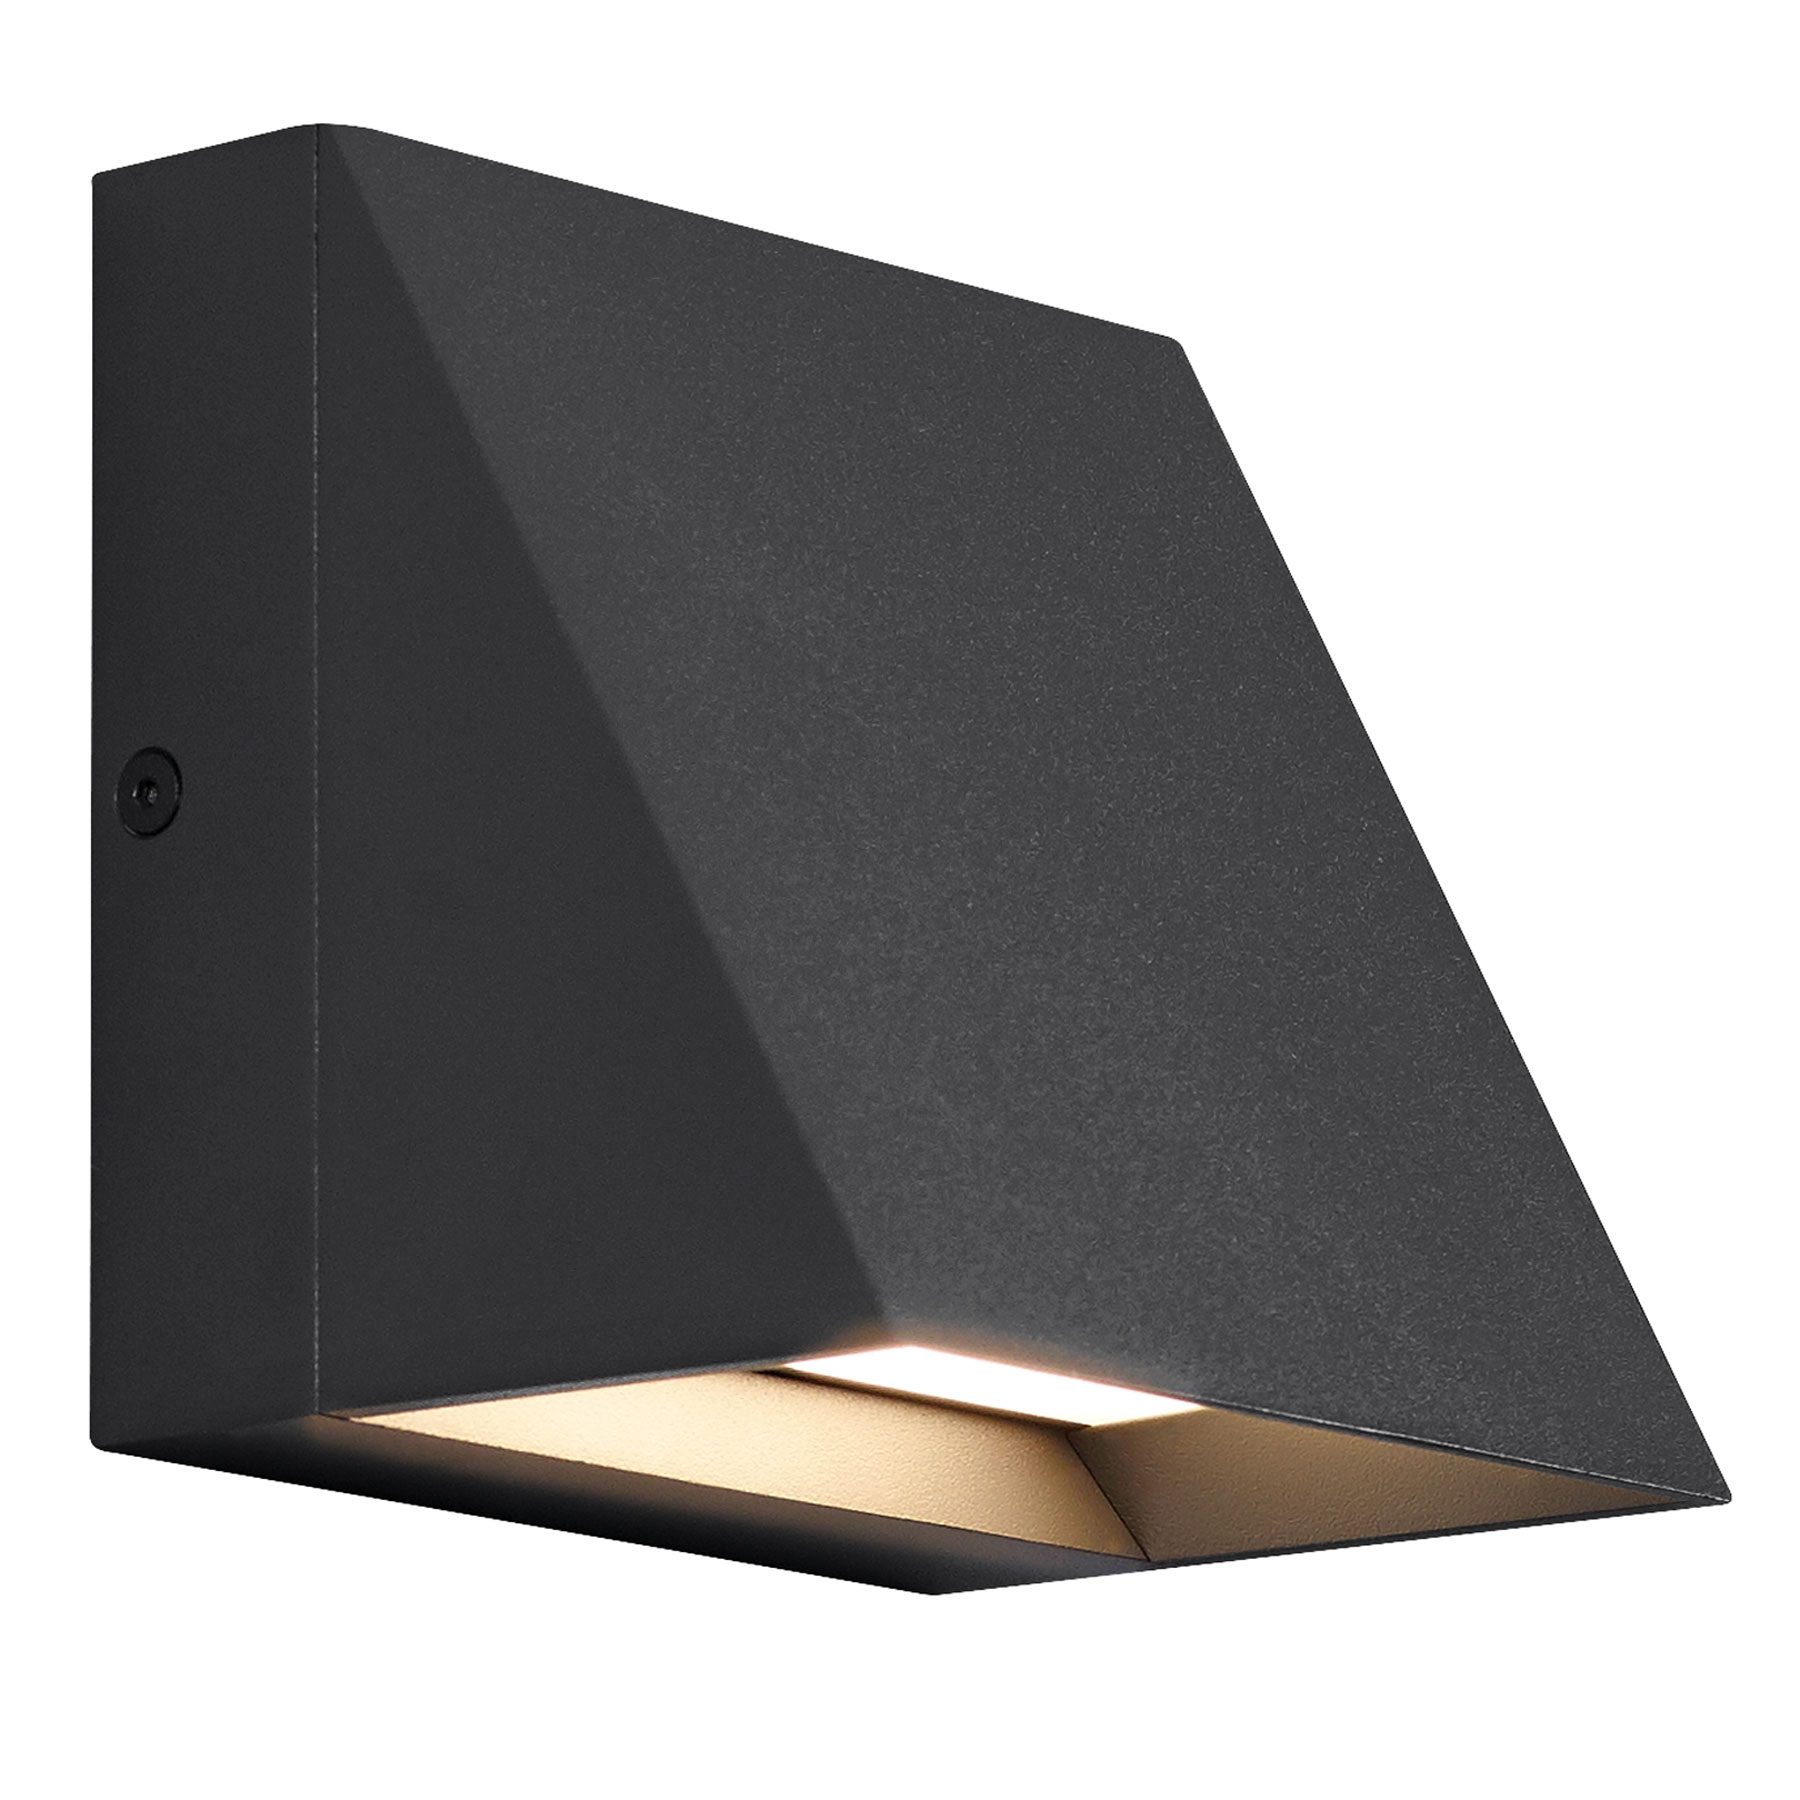 Pitch Outdoor Wall Light By Tech Lighting 700wspitsb Led830